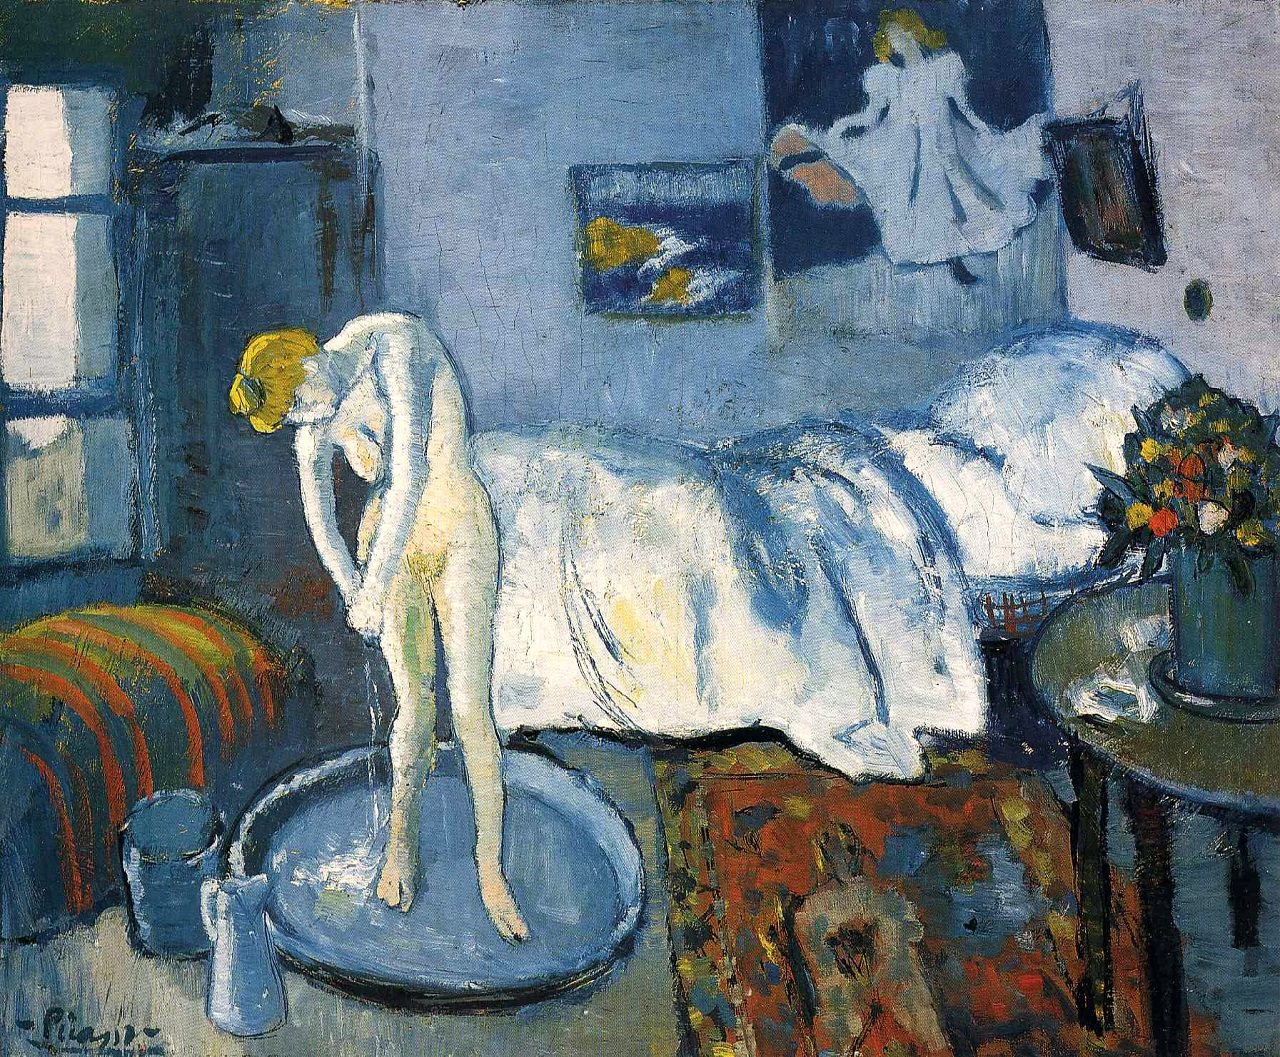 Pablo Picasso's The Blue Room, created in 1901, belongs to Blue Period of cubist painter. It depicts a woman bathing in tub.